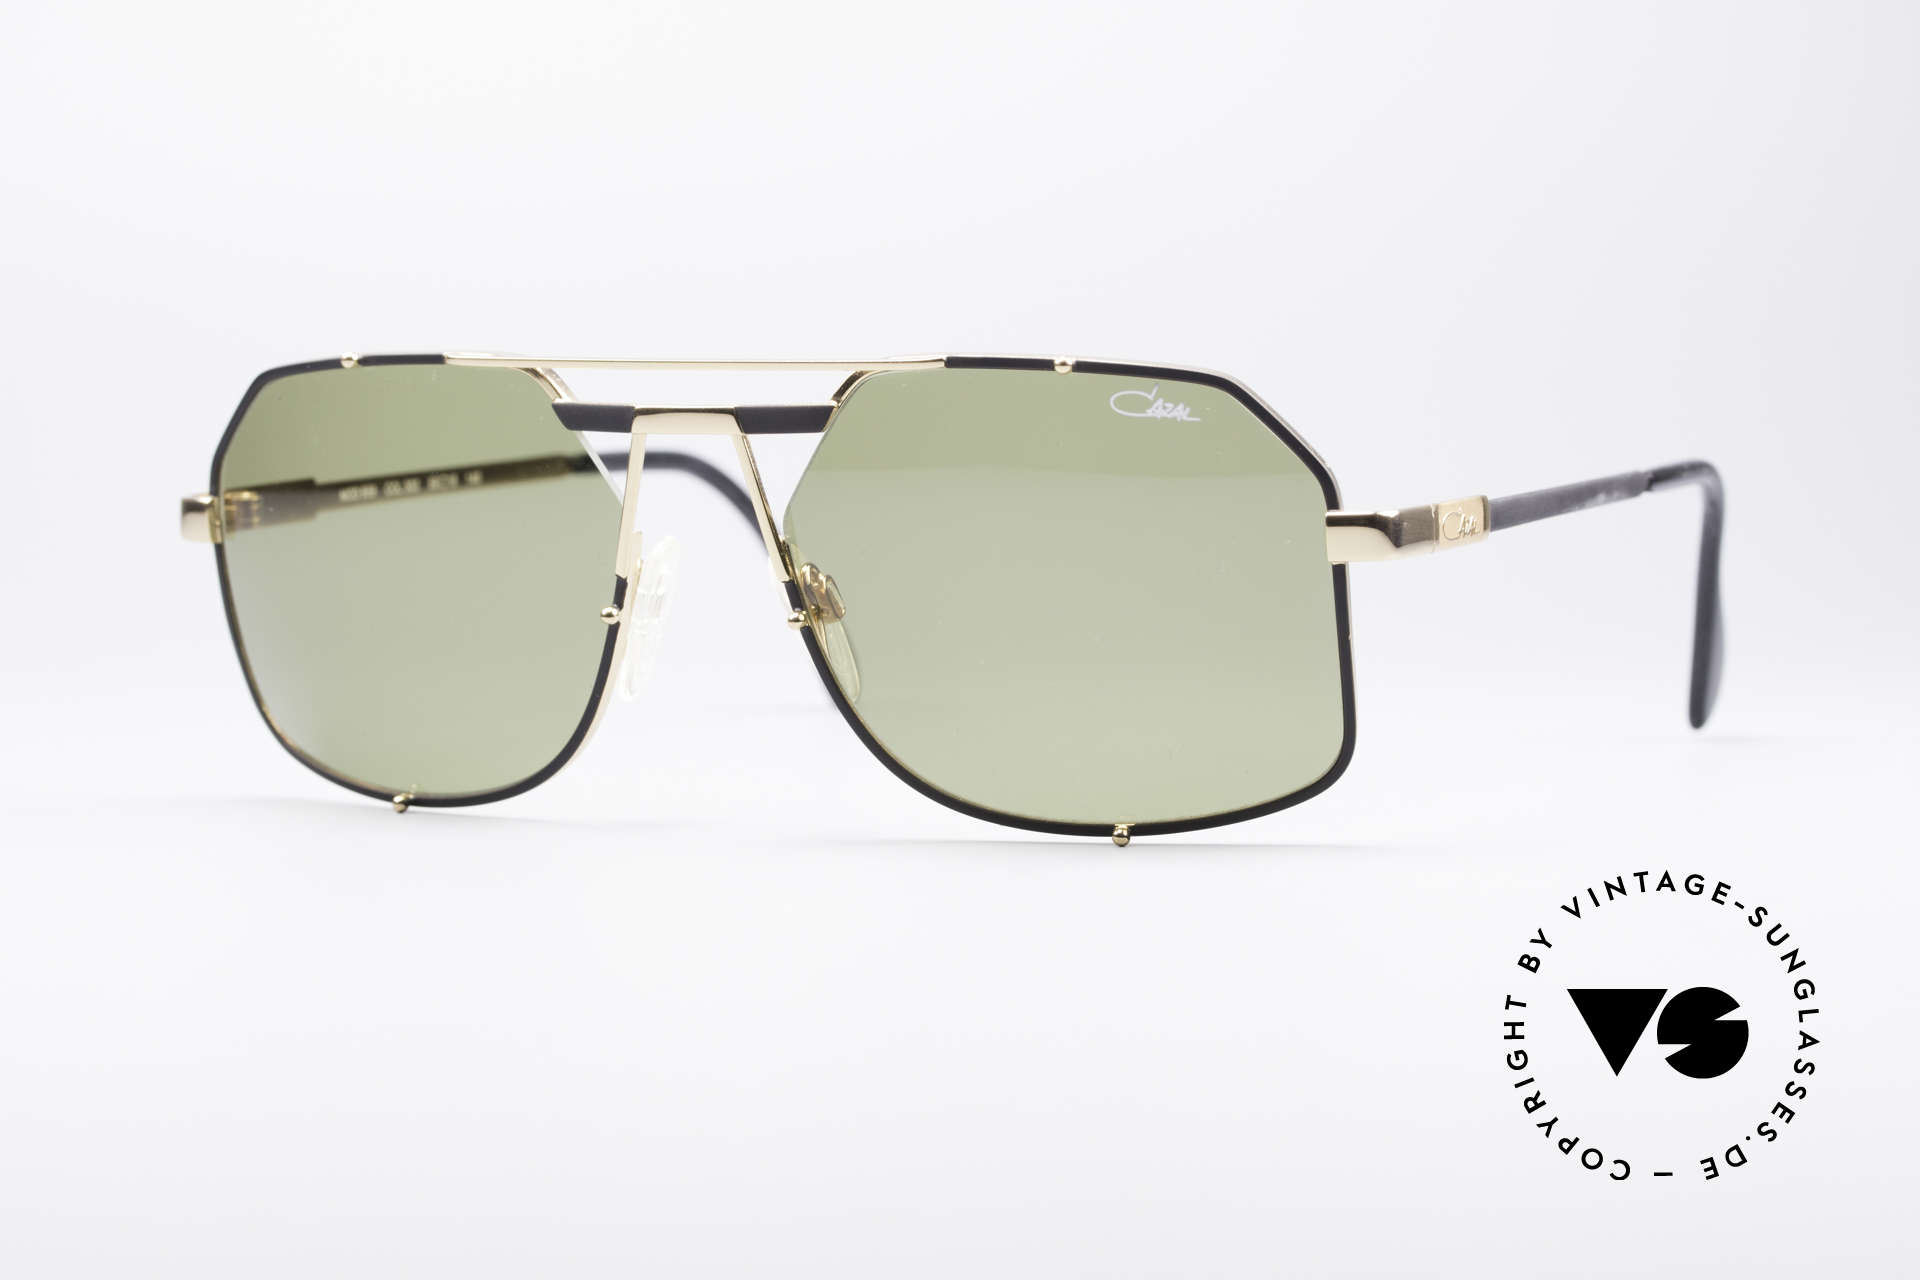 Cazal 959 90's Gentlemen's Shades, very elegant Cazal designer sunglasses from 1993, Made for Men